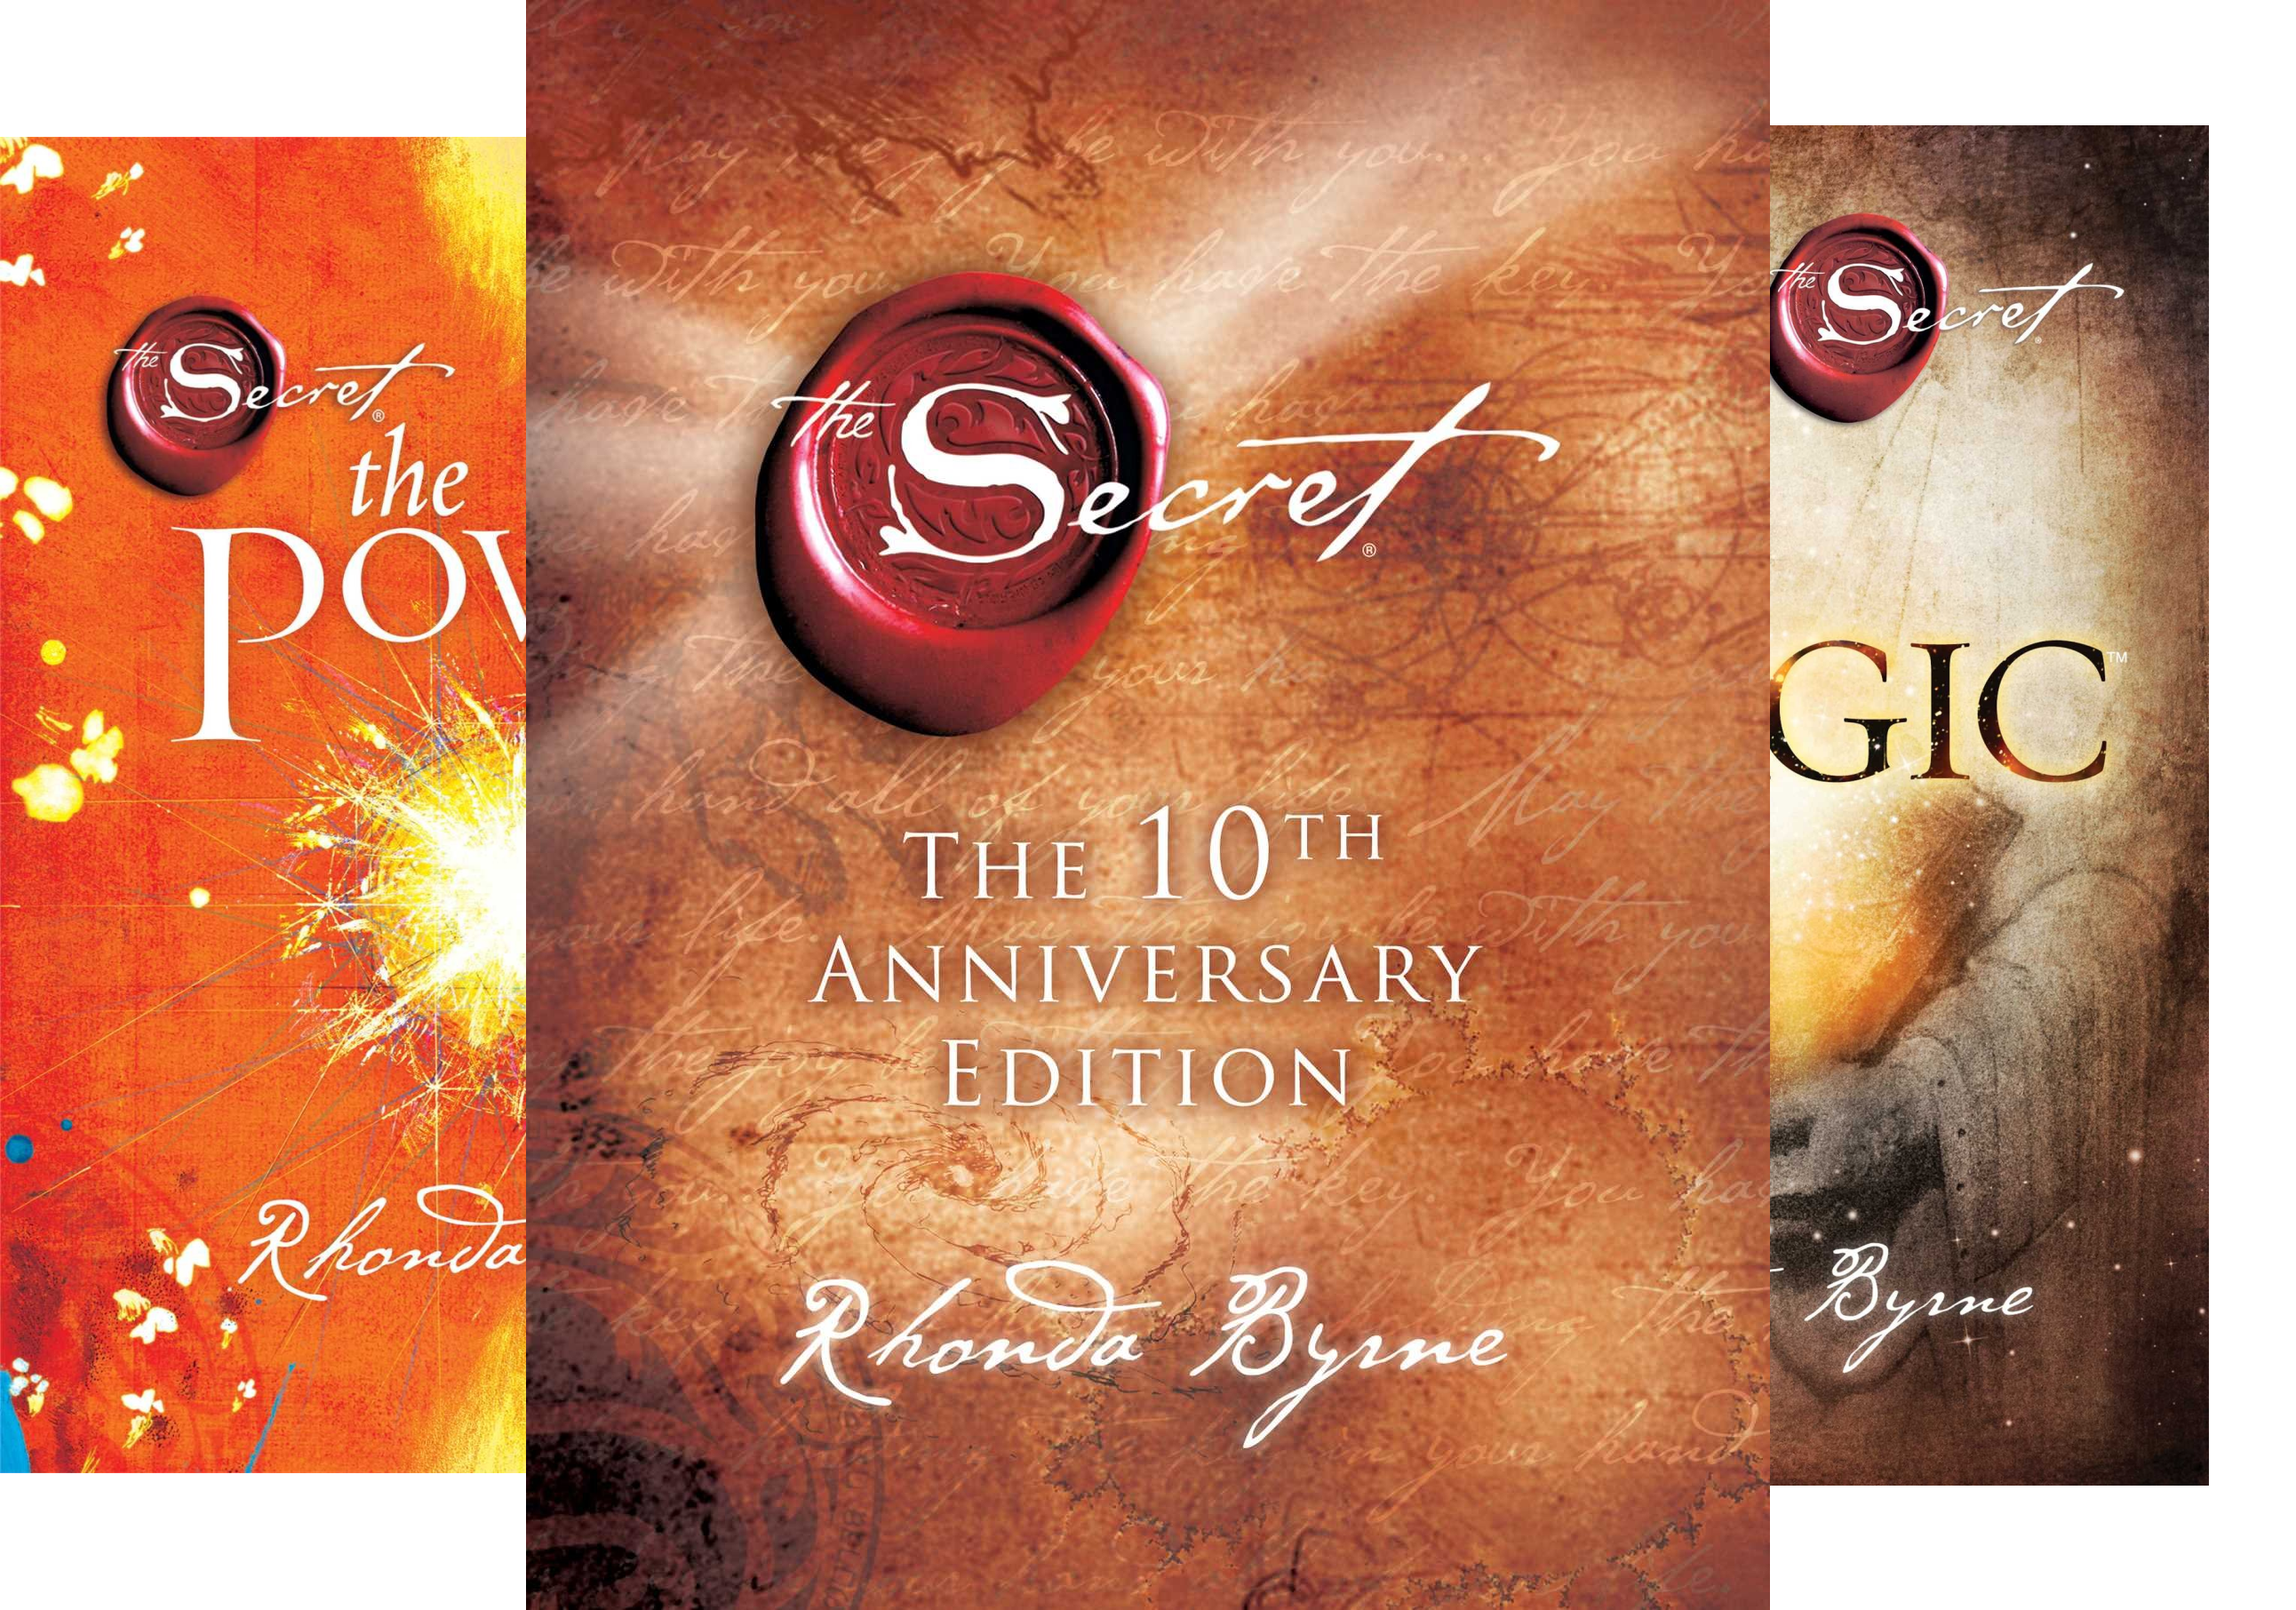 the-secret-4-book-series